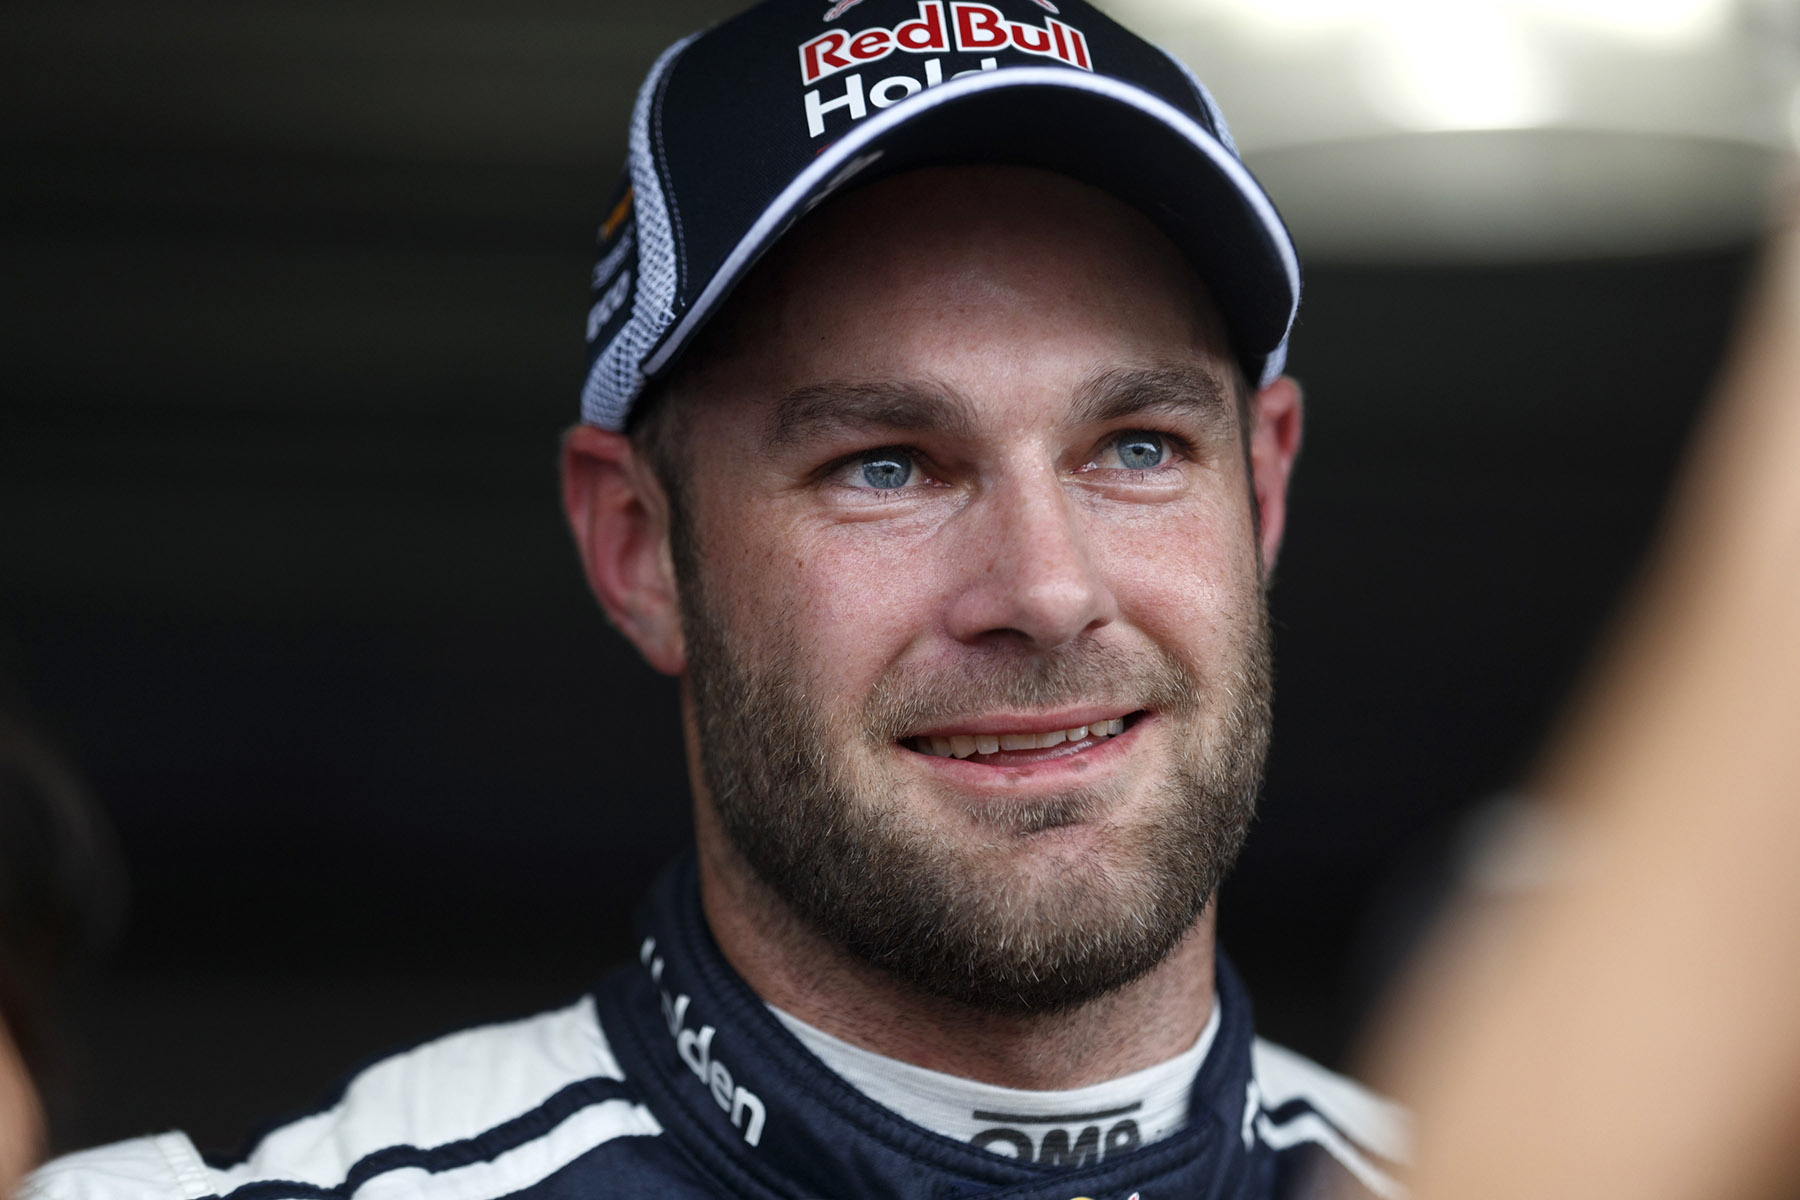 van Gisbergen returns to Australian GT at The Bend